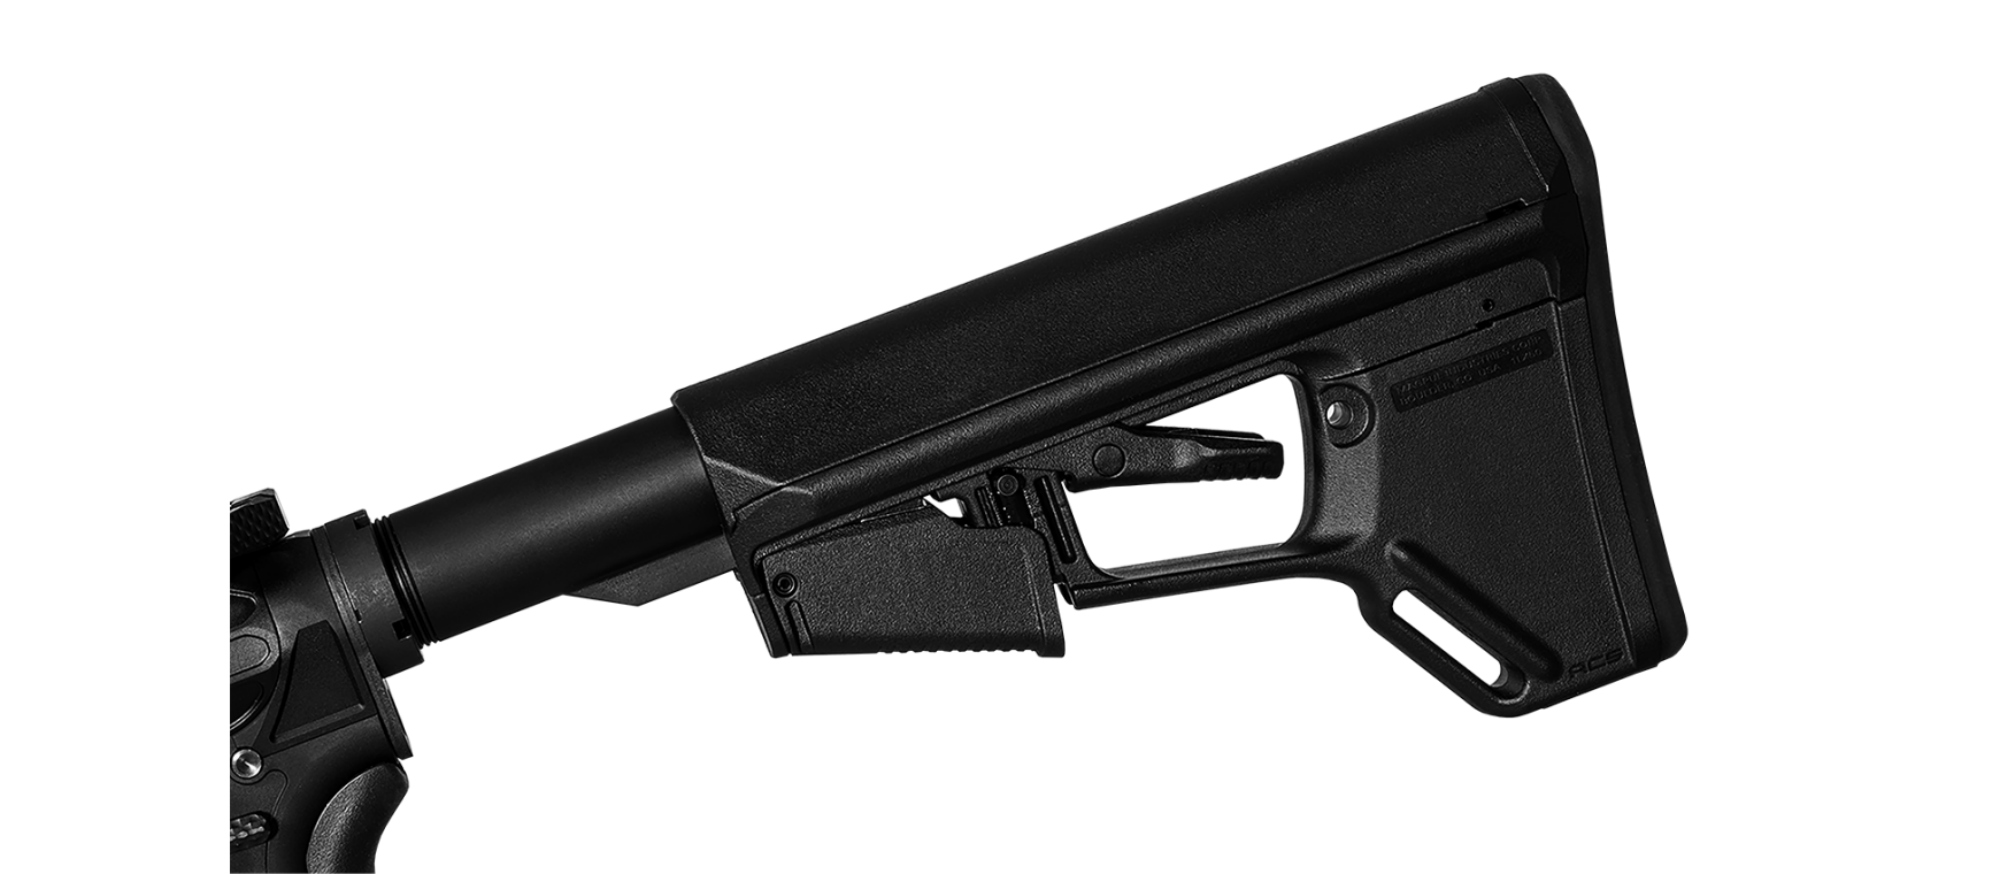 Magpul ACS-L stock of the NX3G rifle.